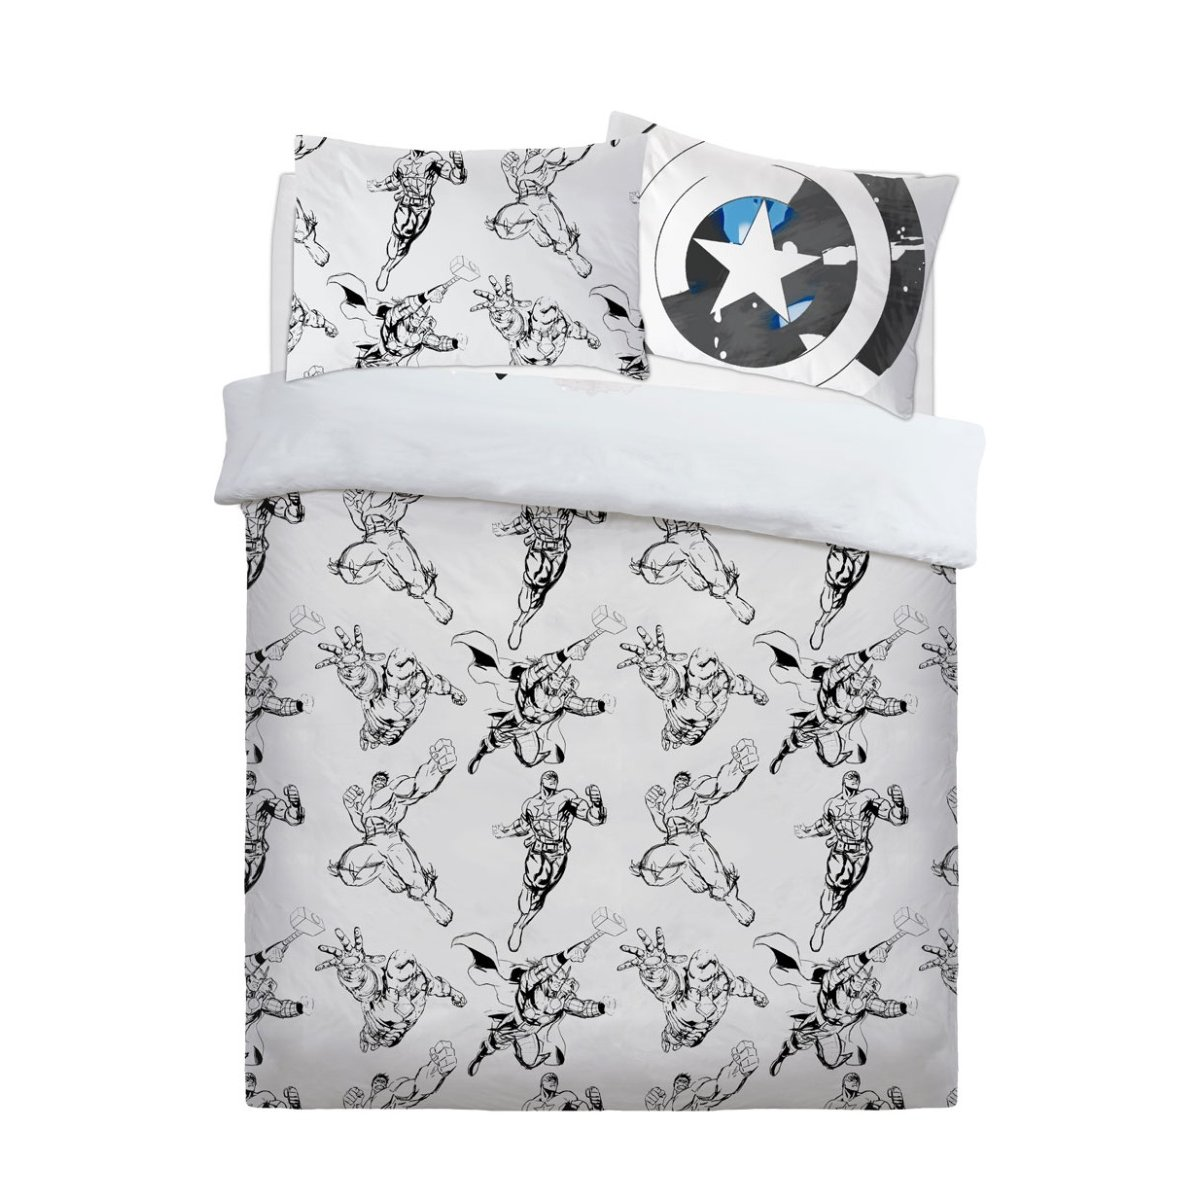 Marvel Watercolour Bedding - Reversible Duvet Cover and Pillowcase Set